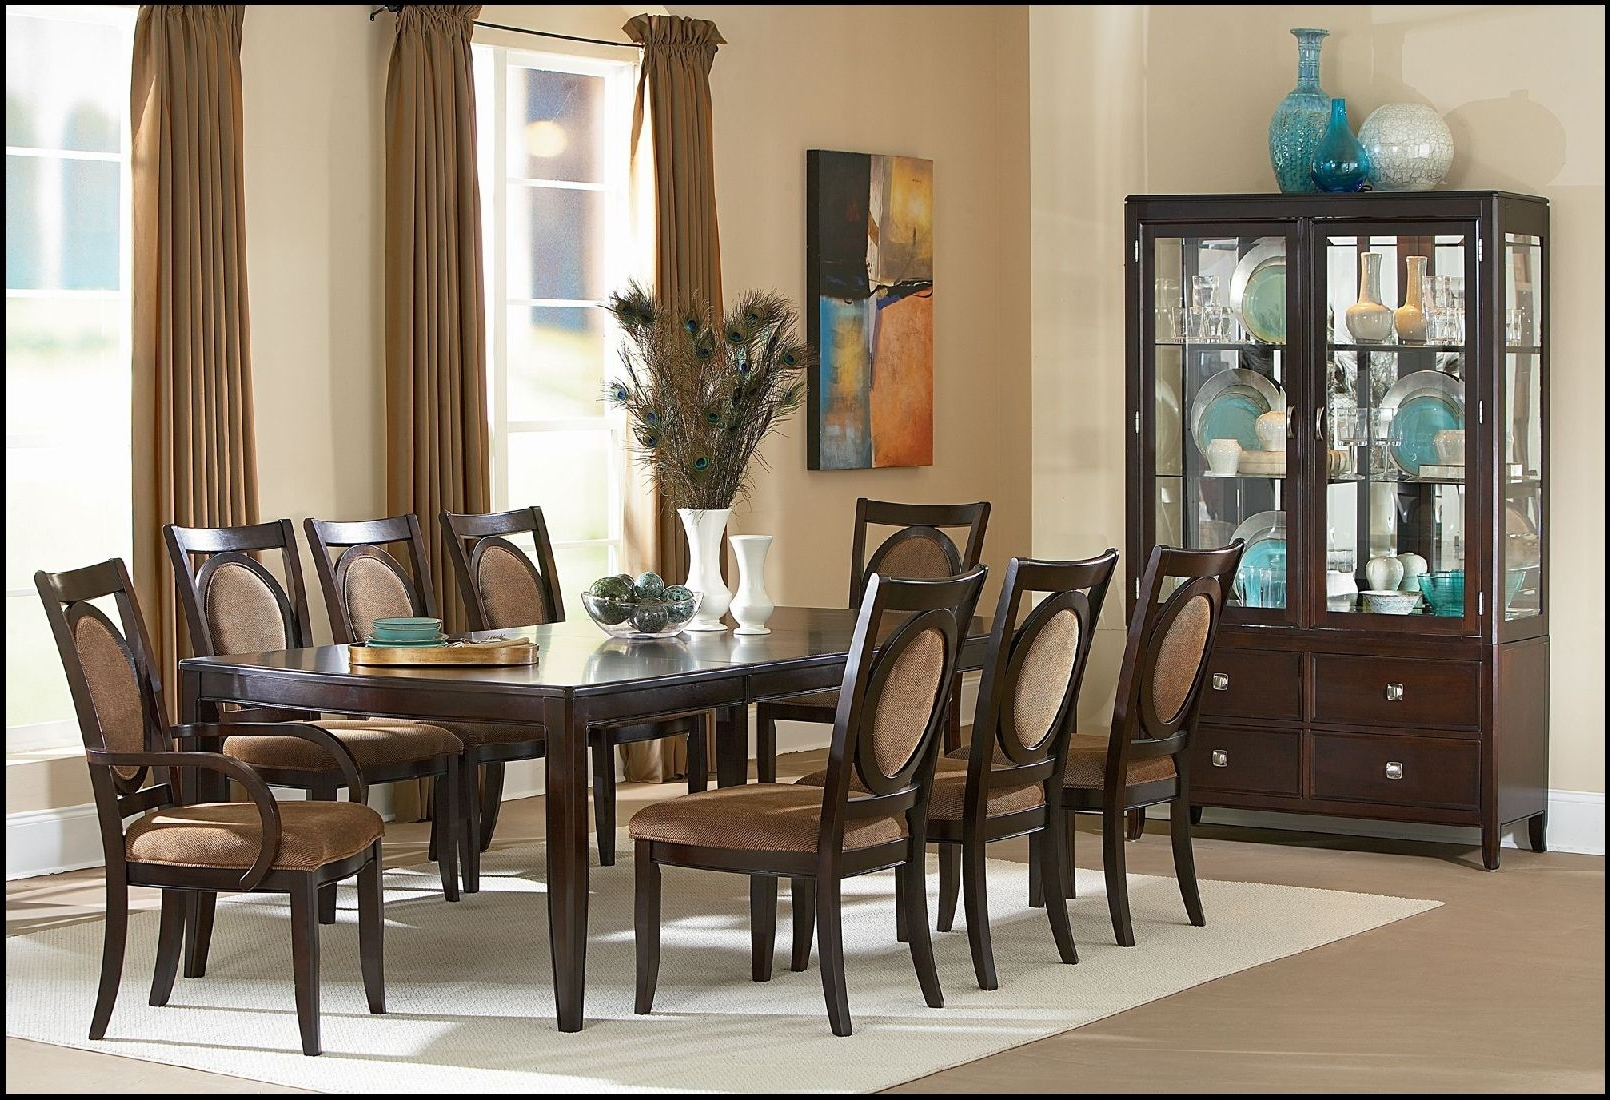 Sitiwhitegroook Regarding 8 Chairs Dining Tables (View 22 of 25)